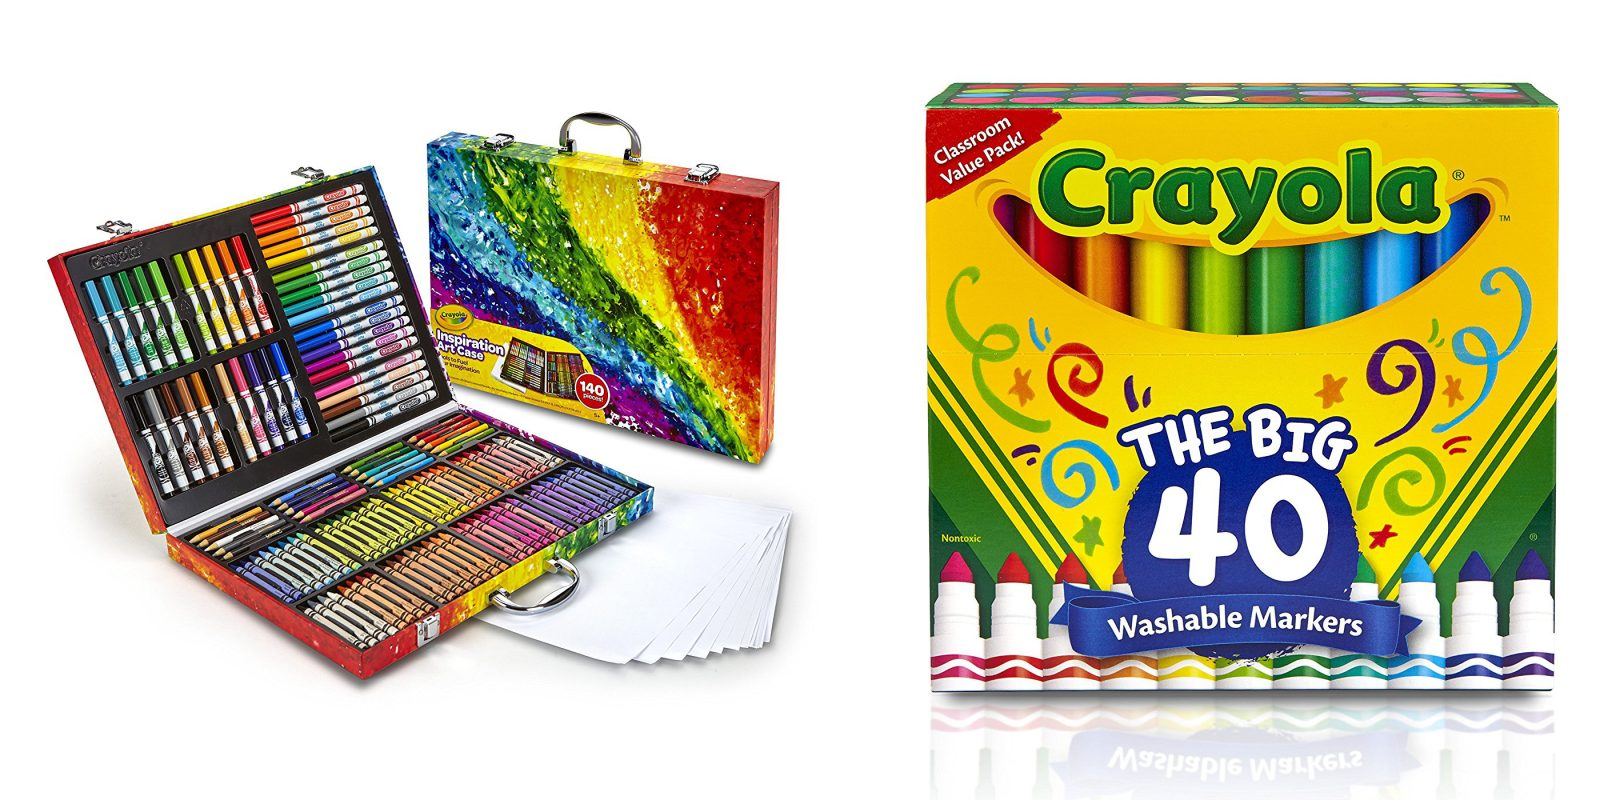 Amazon easter crayola sale 40 off 40 pack markers 9 paper gifts amazon easter crayola sale 40 off 40 pack markers 9 paper gifts more negle Image collections